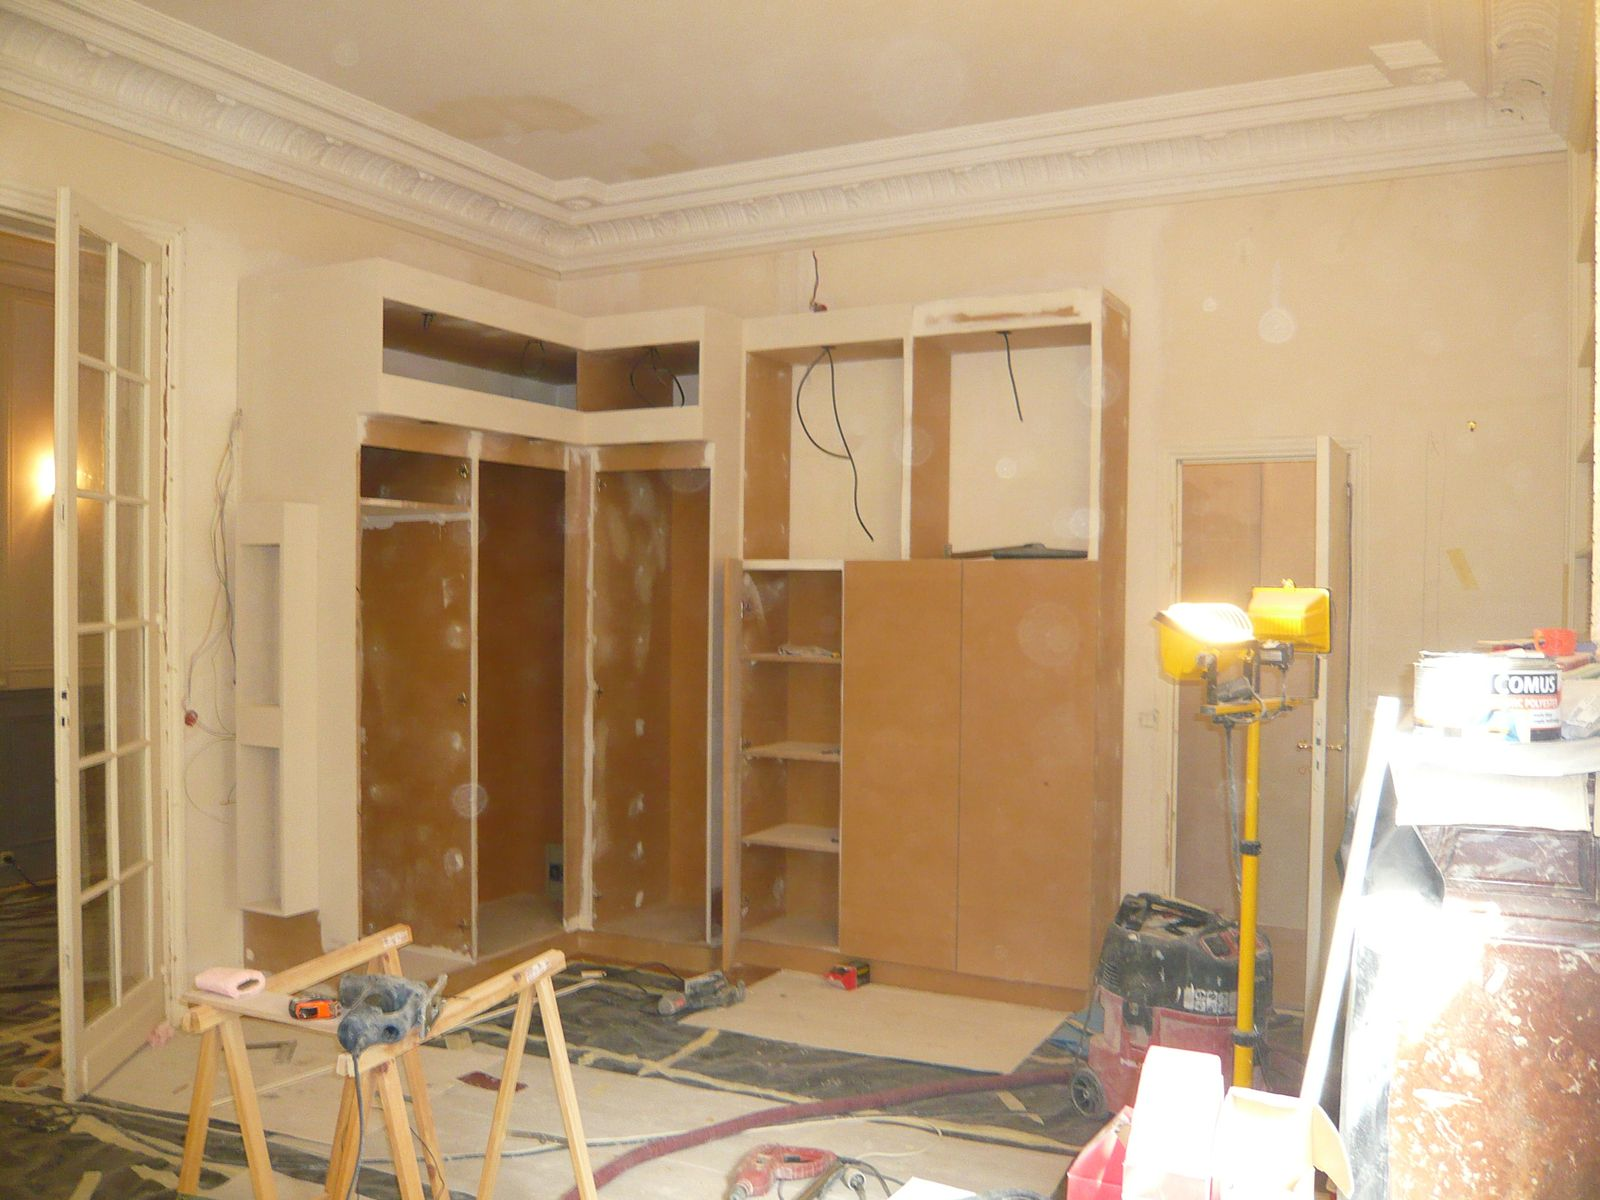 Album appartement haussmannien pendant les travaux le blog de marieclaire - Renovation appartement haussmannien ...